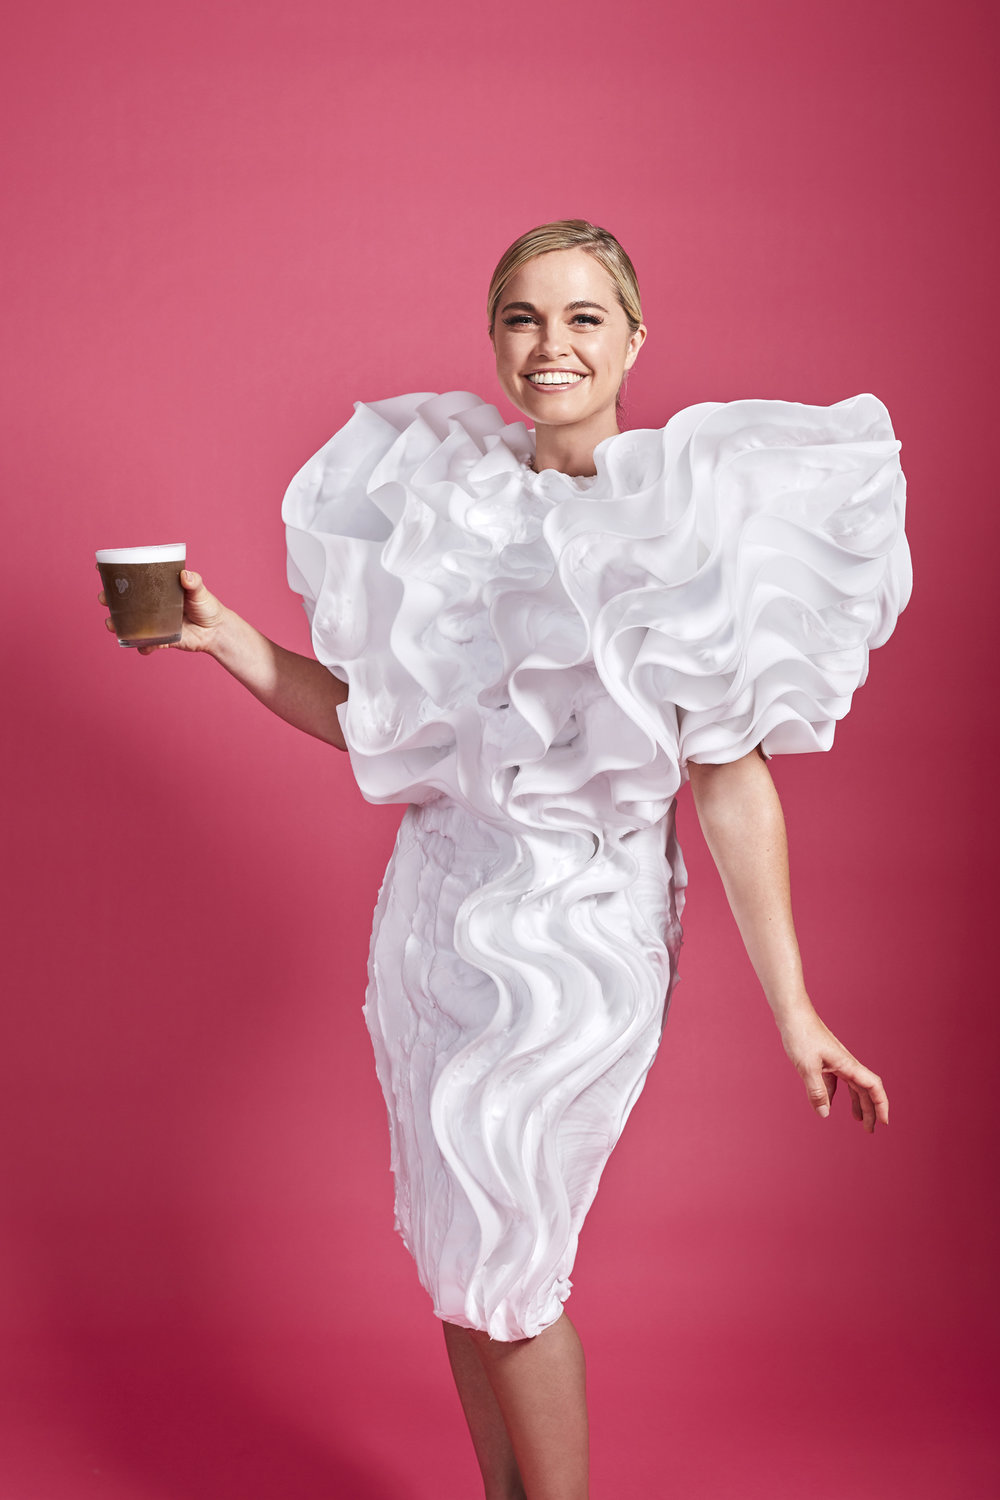 COSTA COFFEE Whipped Milk Campaign with Kate Tabor